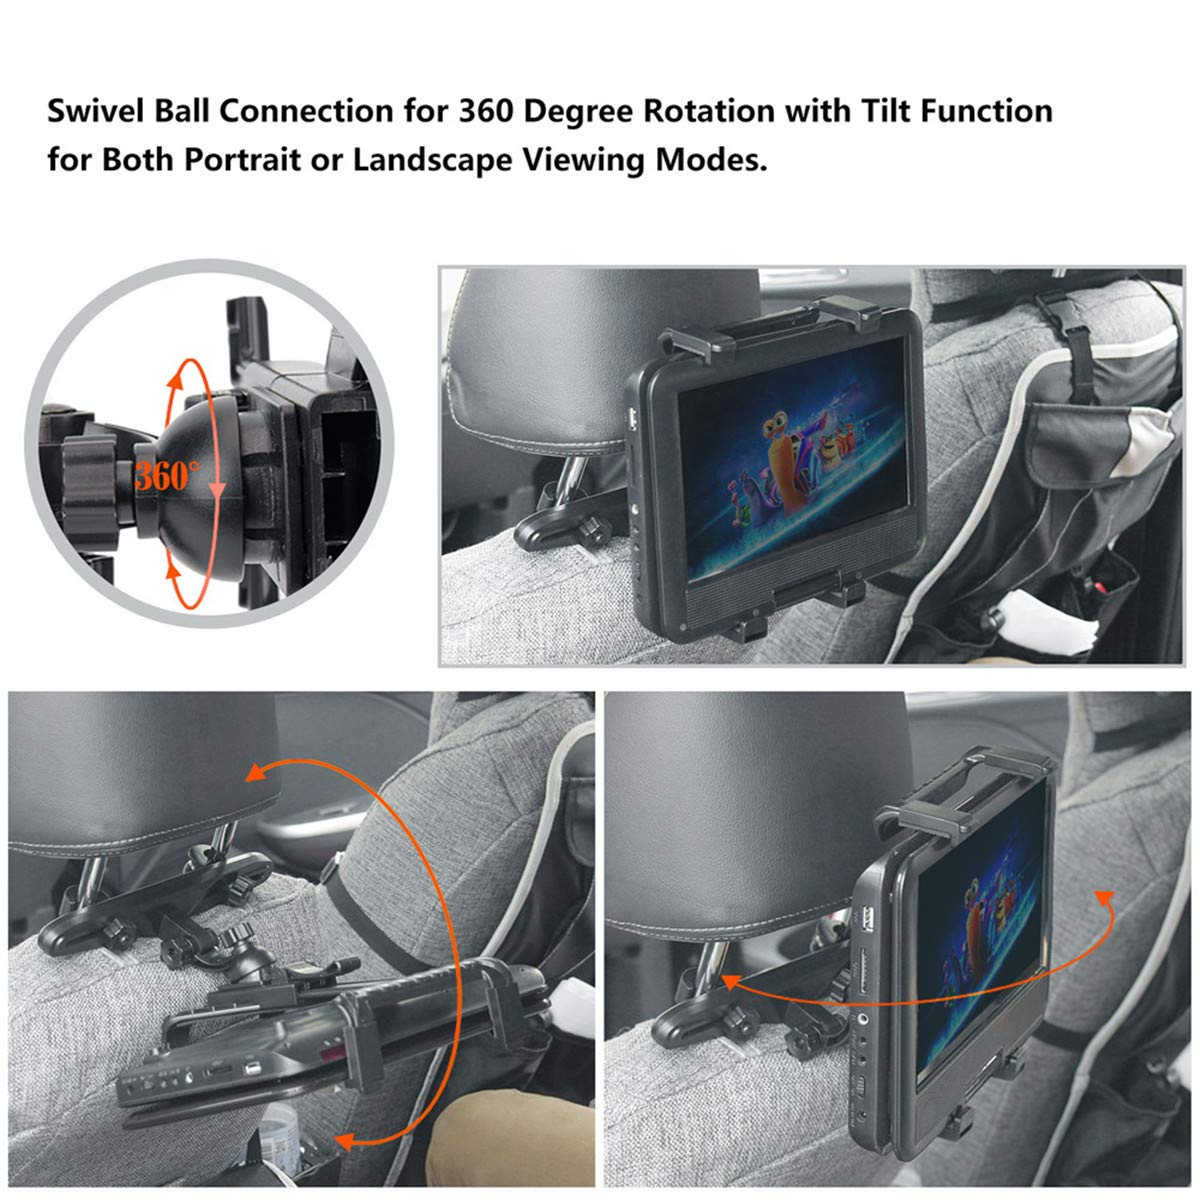 BEDEE Car Headrest Mount Holder for Tablet DVD Player Universal Holder Cradle Bracket with 360° Adjustable Rotatable for iPad Mini Samsung Galaxy Kindle Fire 7inch to 12\